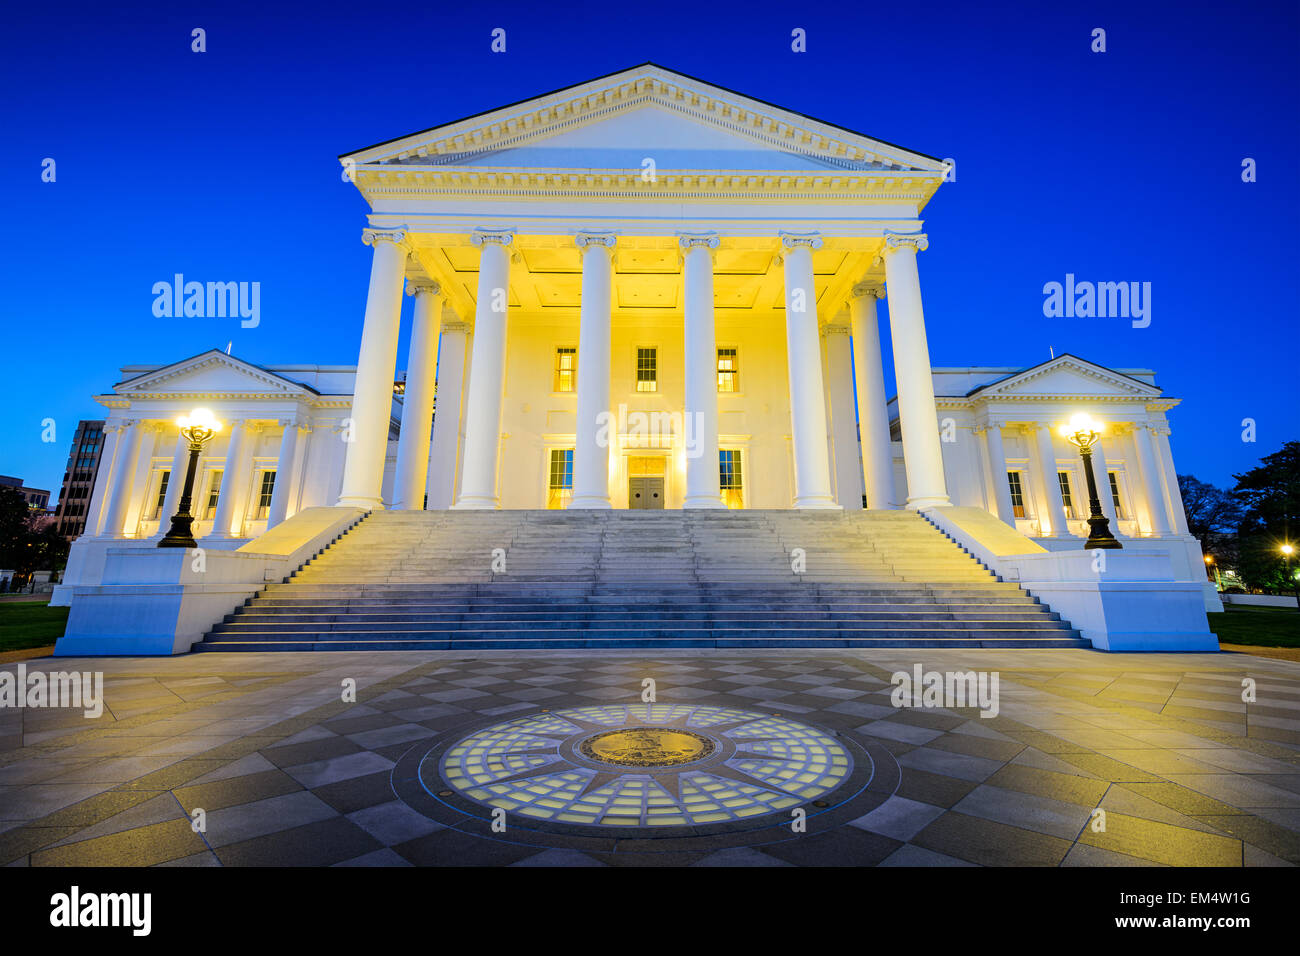 Richmond State Capitol in Richmond, Virginia, USA. - Stock Image